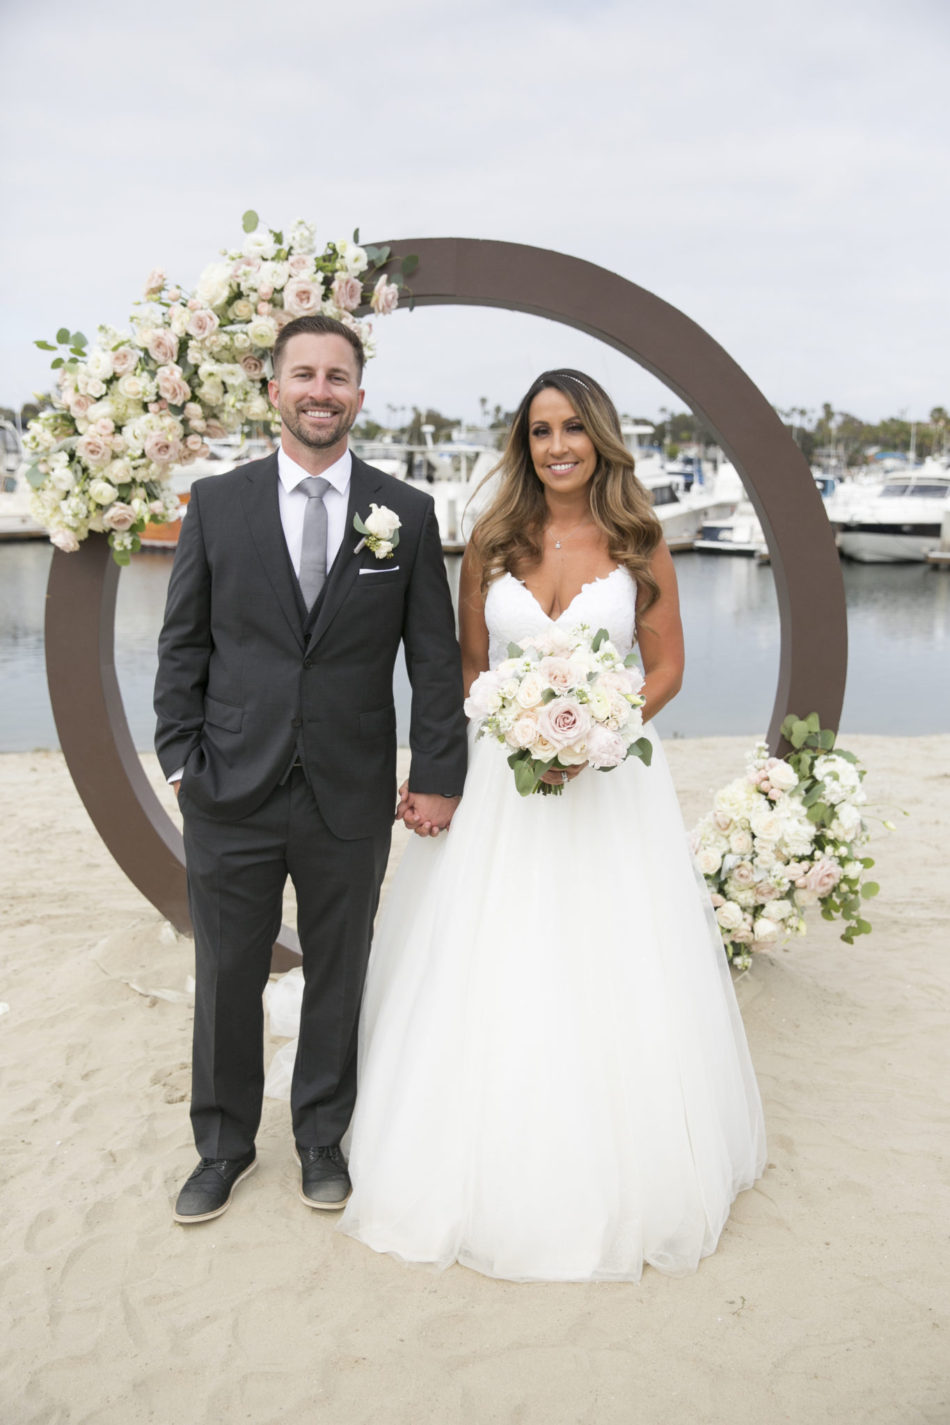 harbor wedding, bay wedding, bride and groom, floral design, florist, wedding florist, wedding flowers, orange county weddings, orange county wedding florist, orange county florist, orange county floral design, flowers by cina